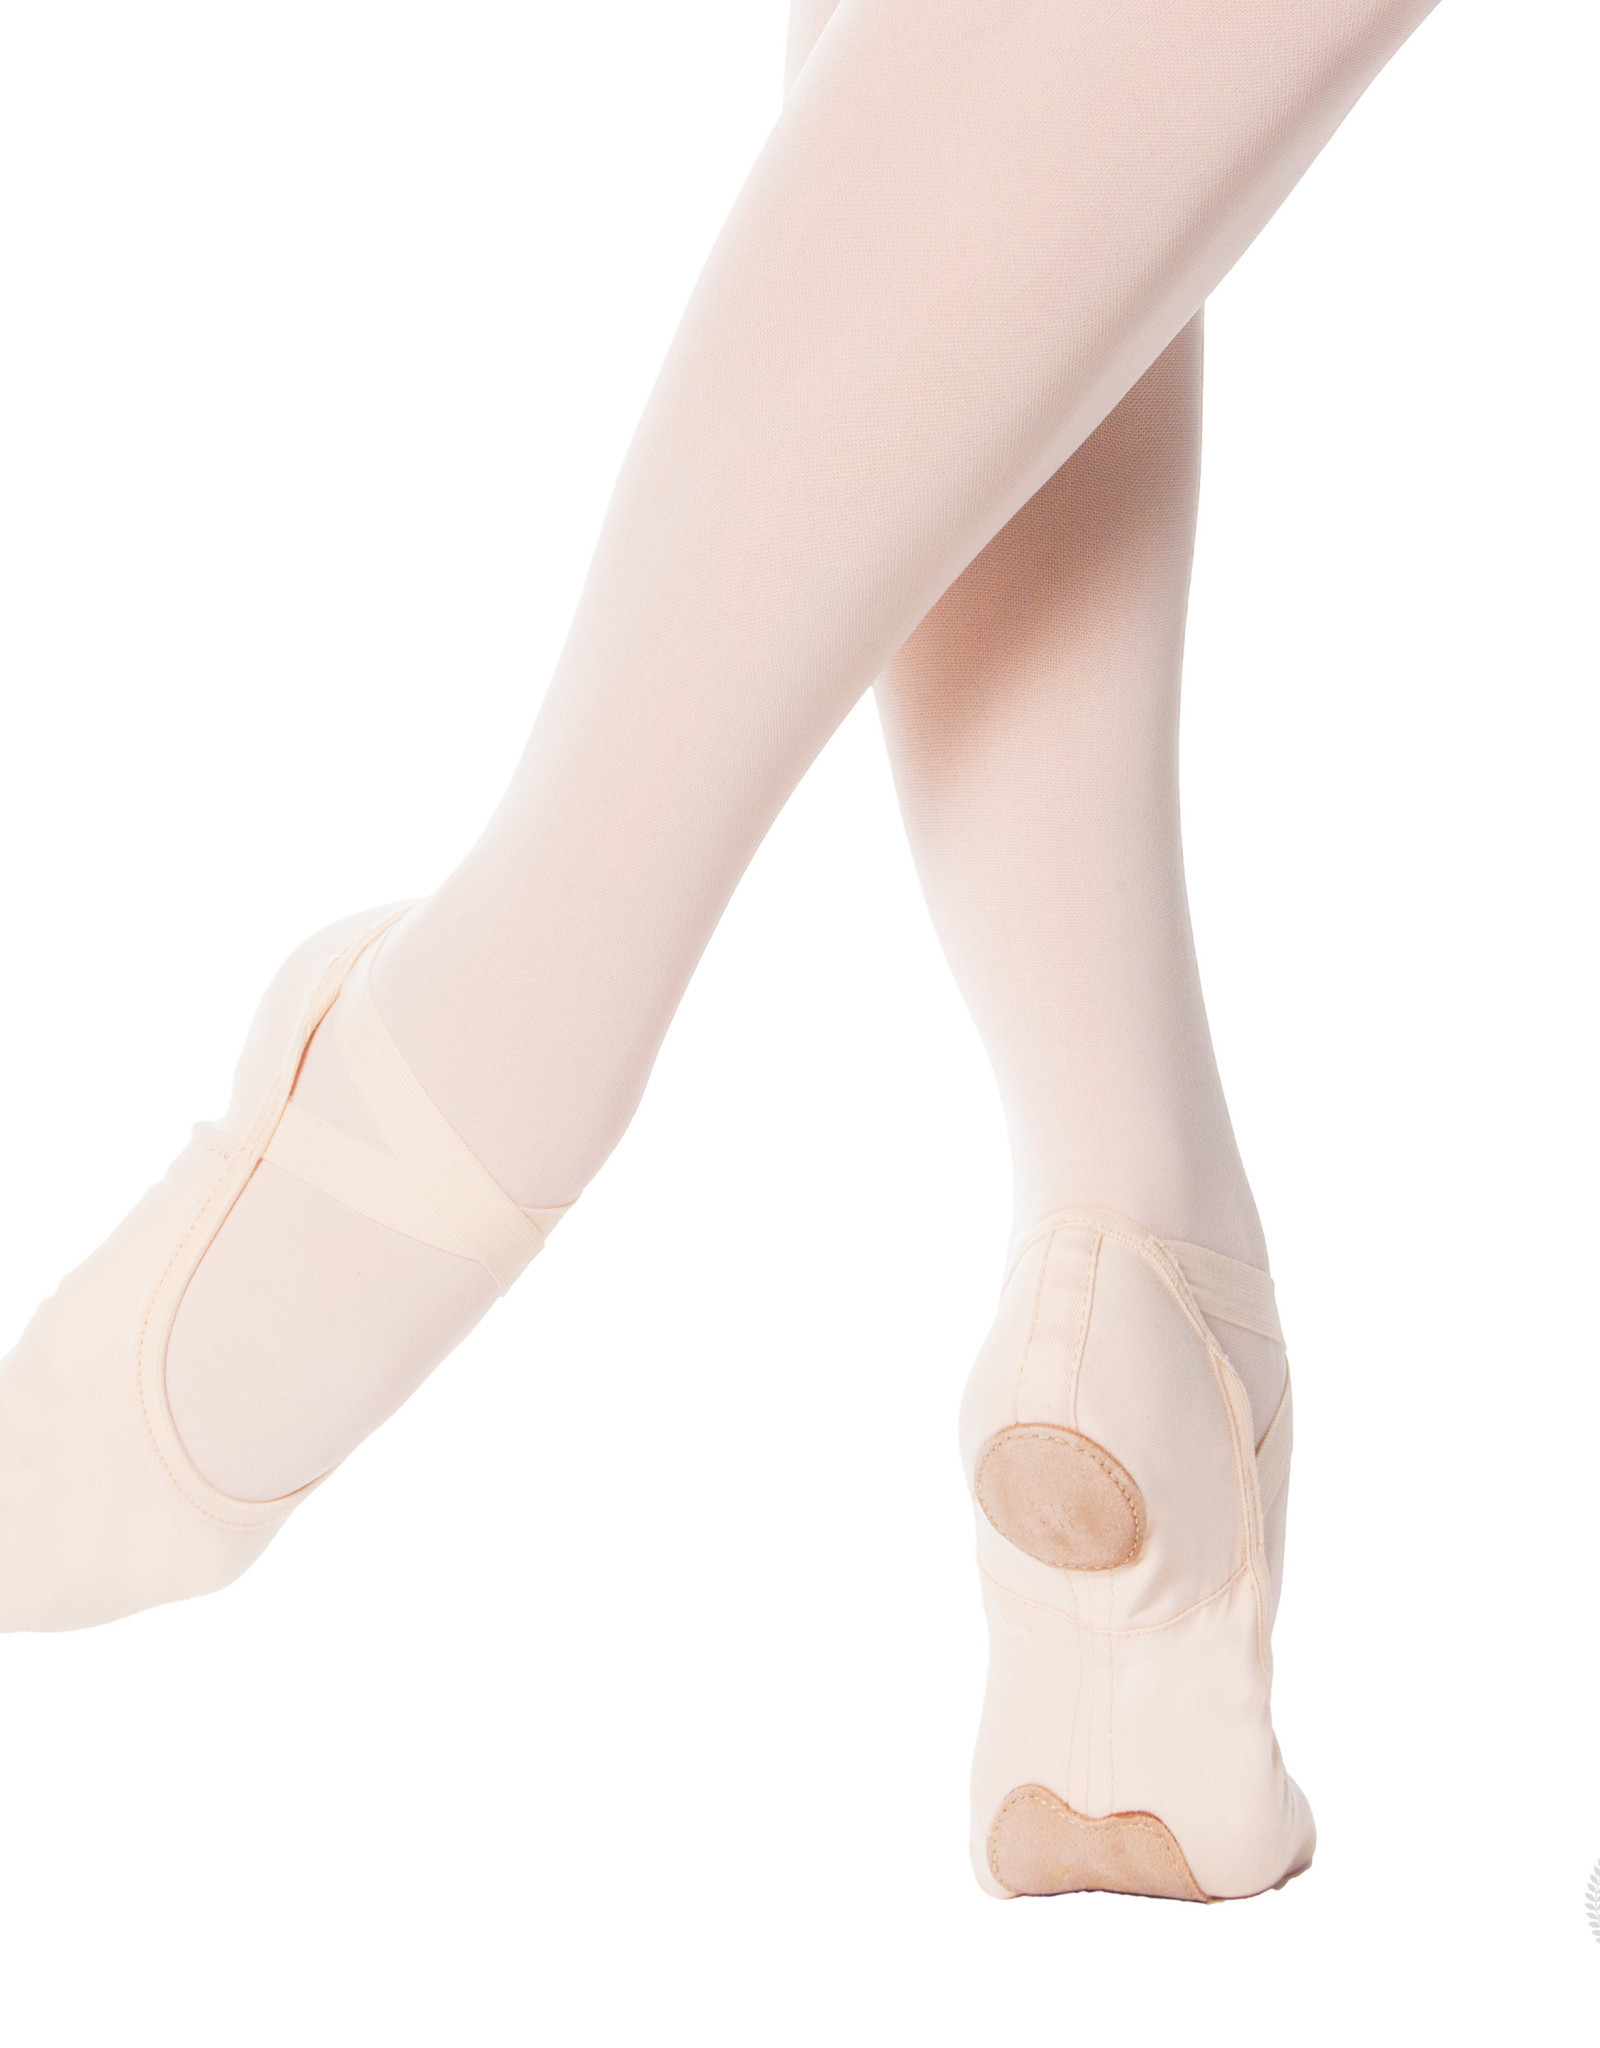 Eurotard Eurotard Assemble Canvas Ballet Adult Shoe A1004A